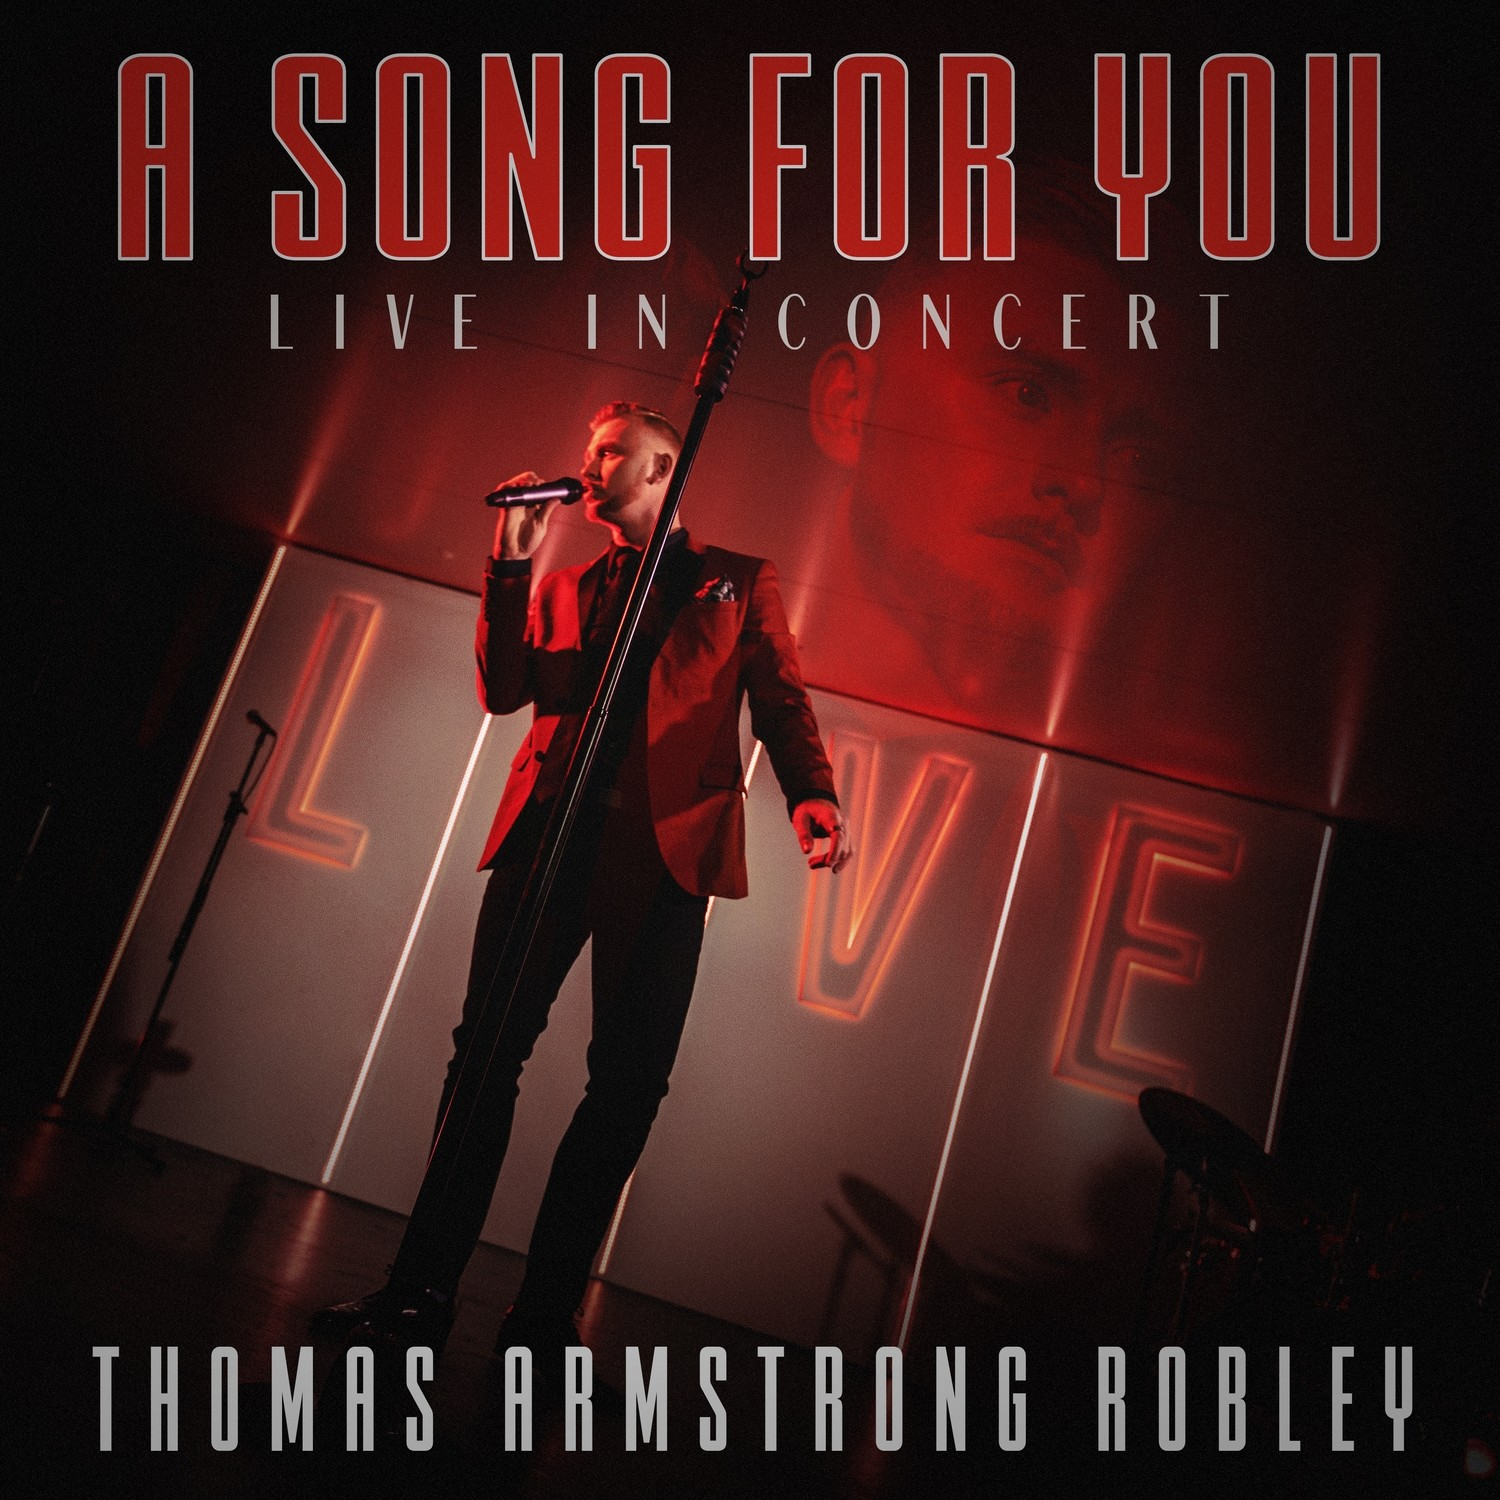 A Song For You: Live in Concert (Album)